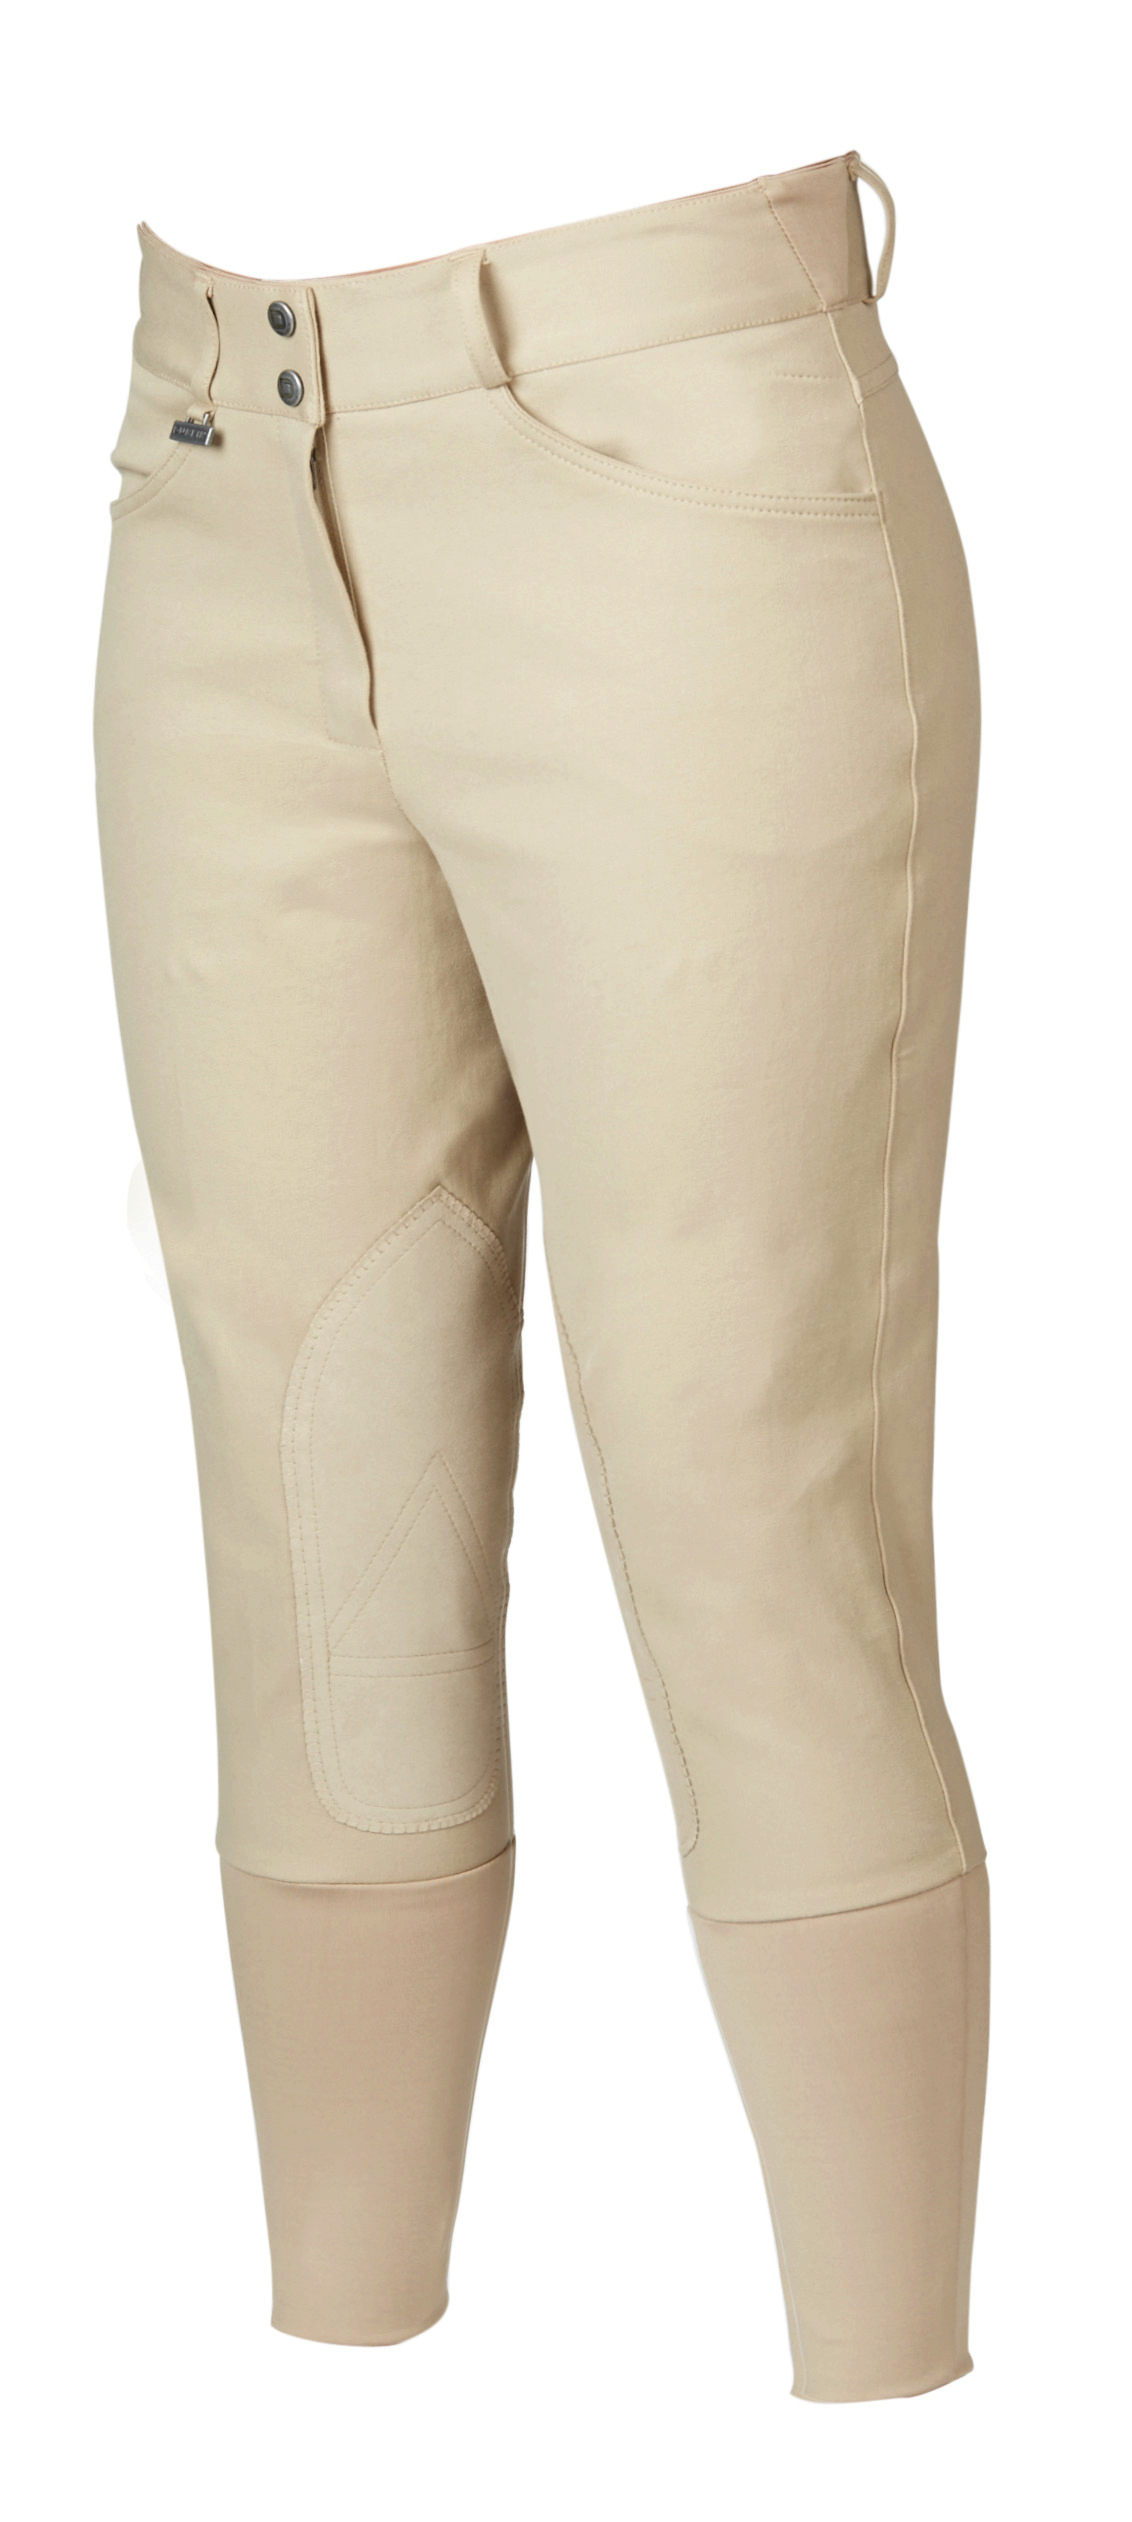 Dublin Everyday Shapely Breeches - Ladies, EuroSeat